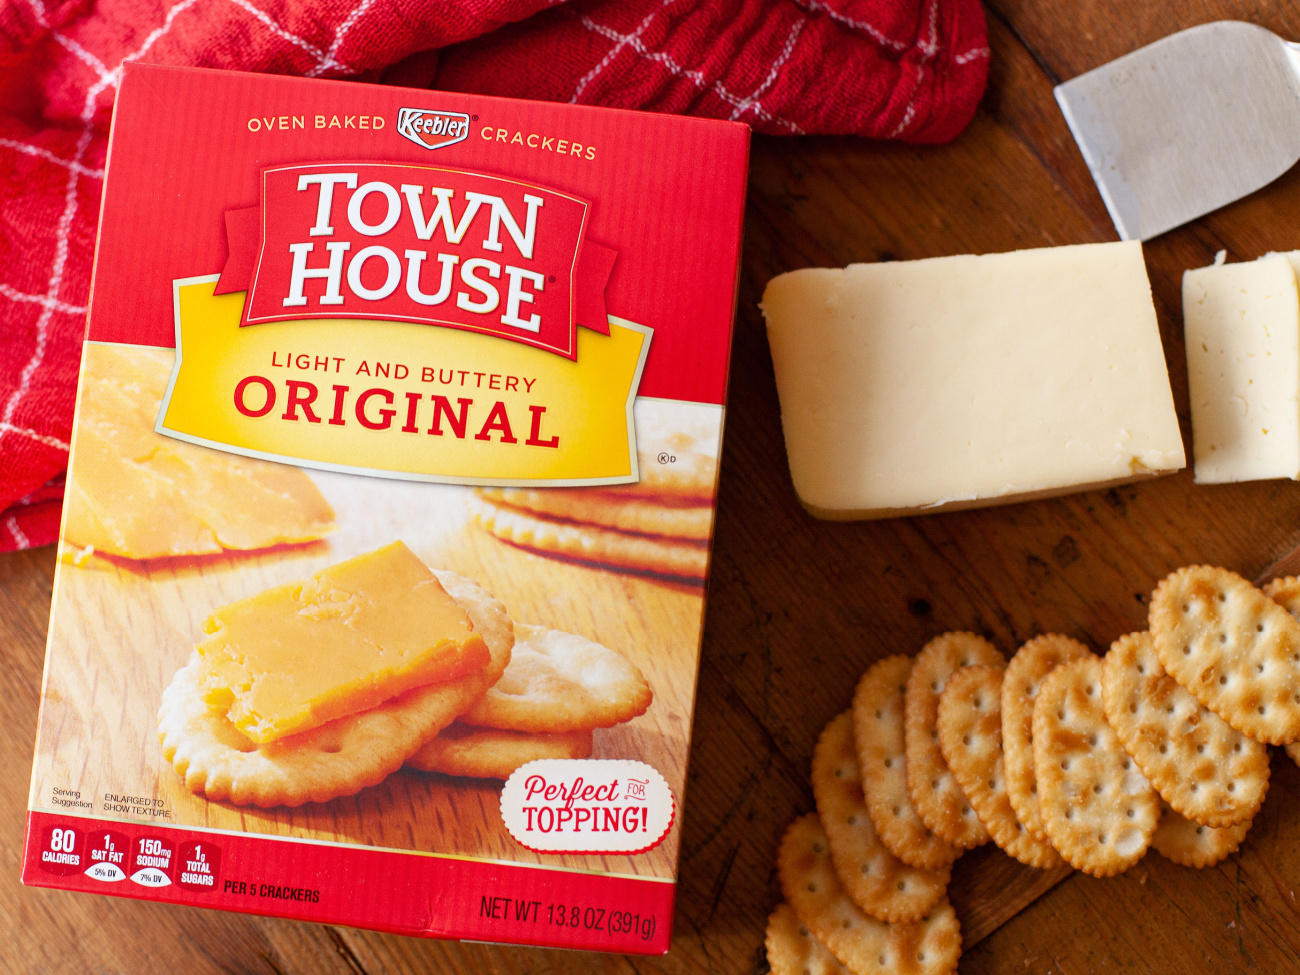 Keebler Club Or Town House Crackers Just 79¢ At Publix on I Heart Publix